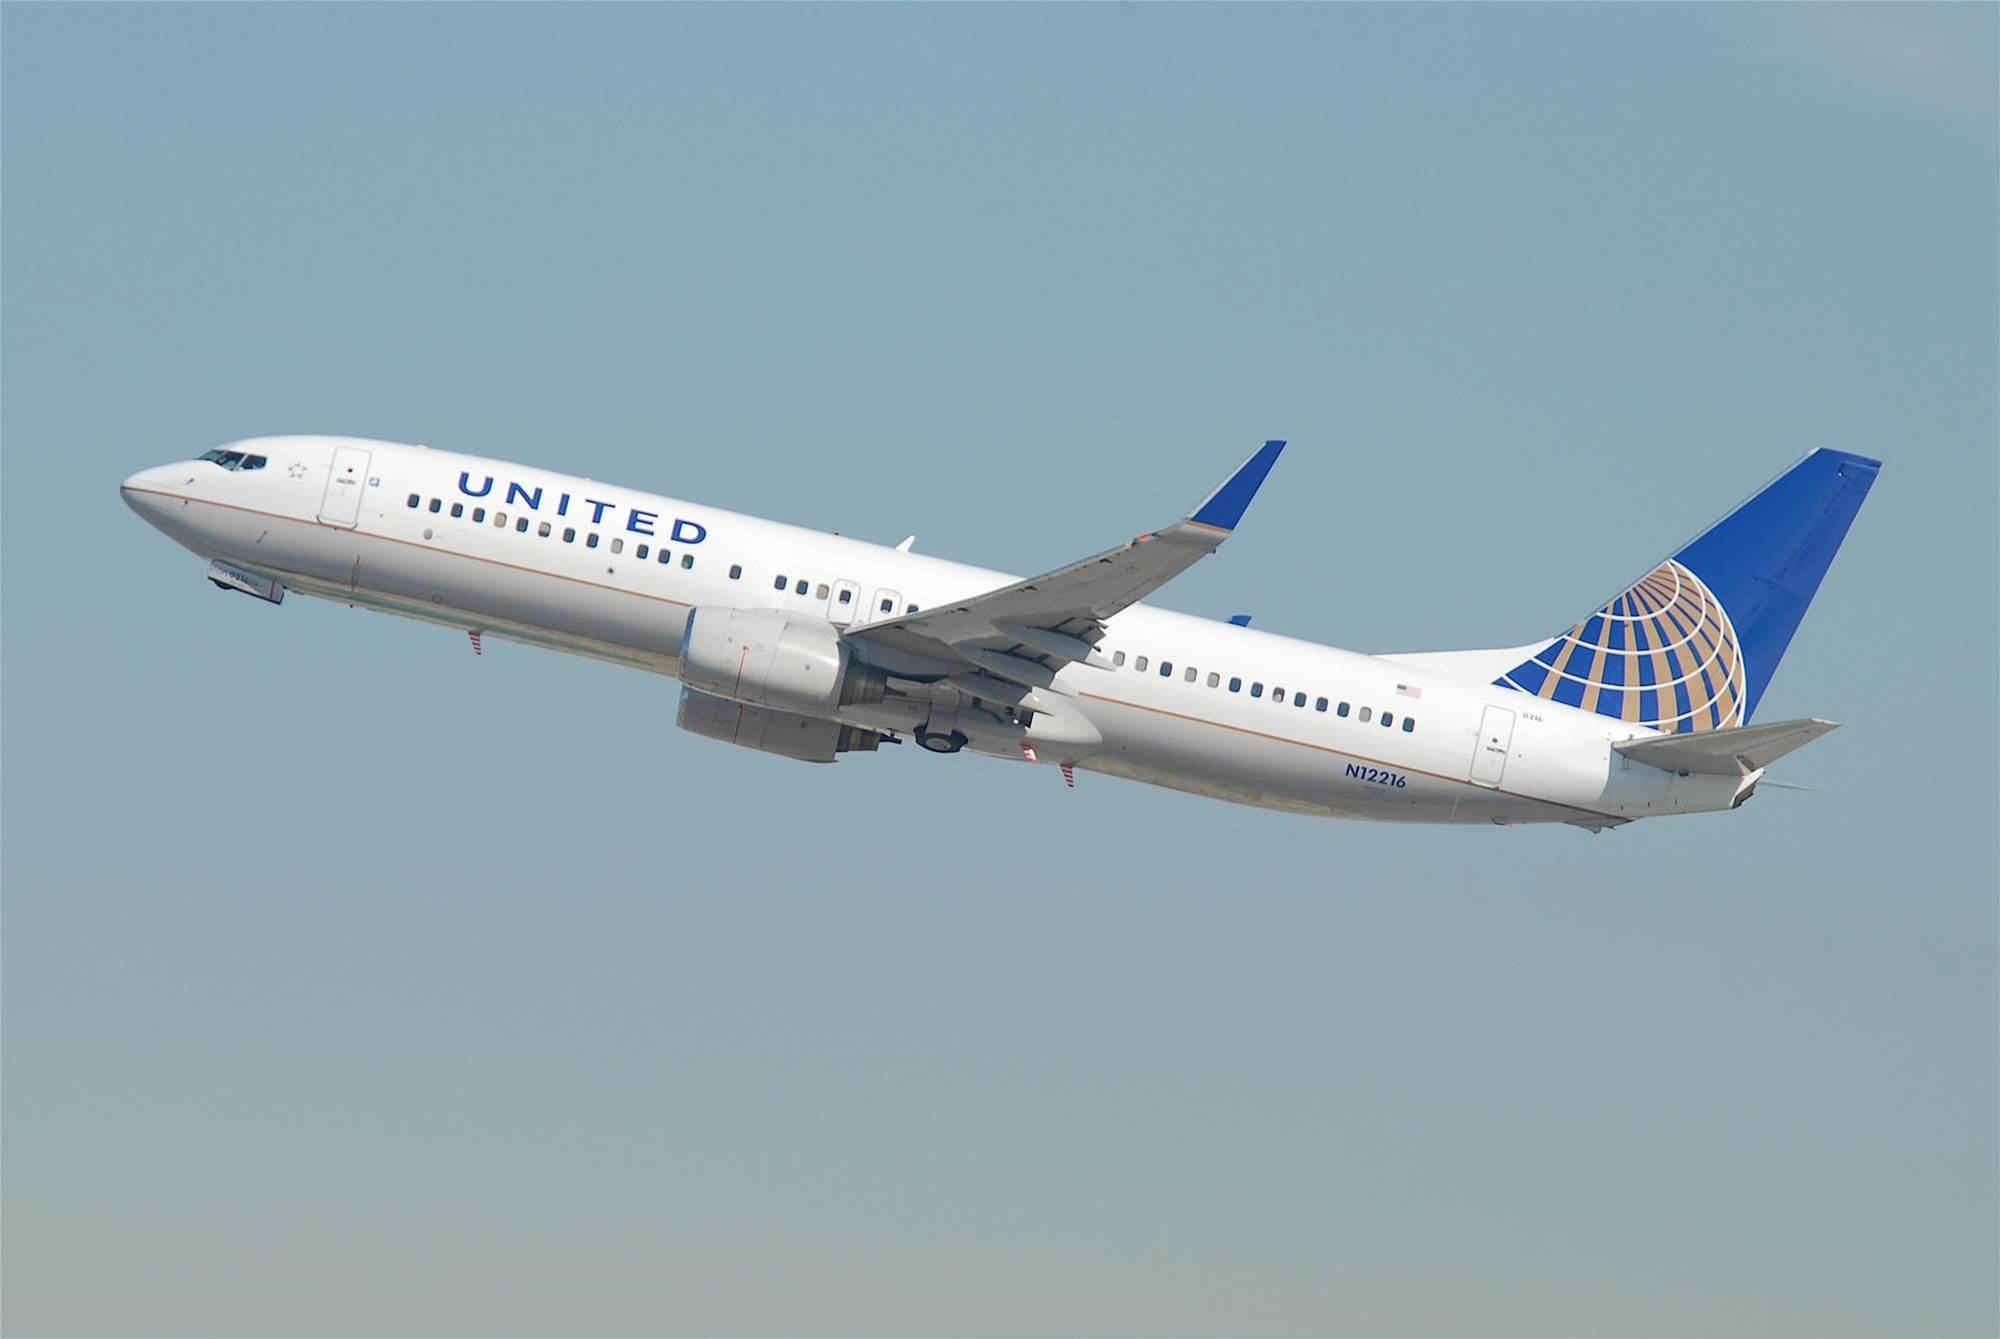 United Airlines awards millions of points as bug bounty